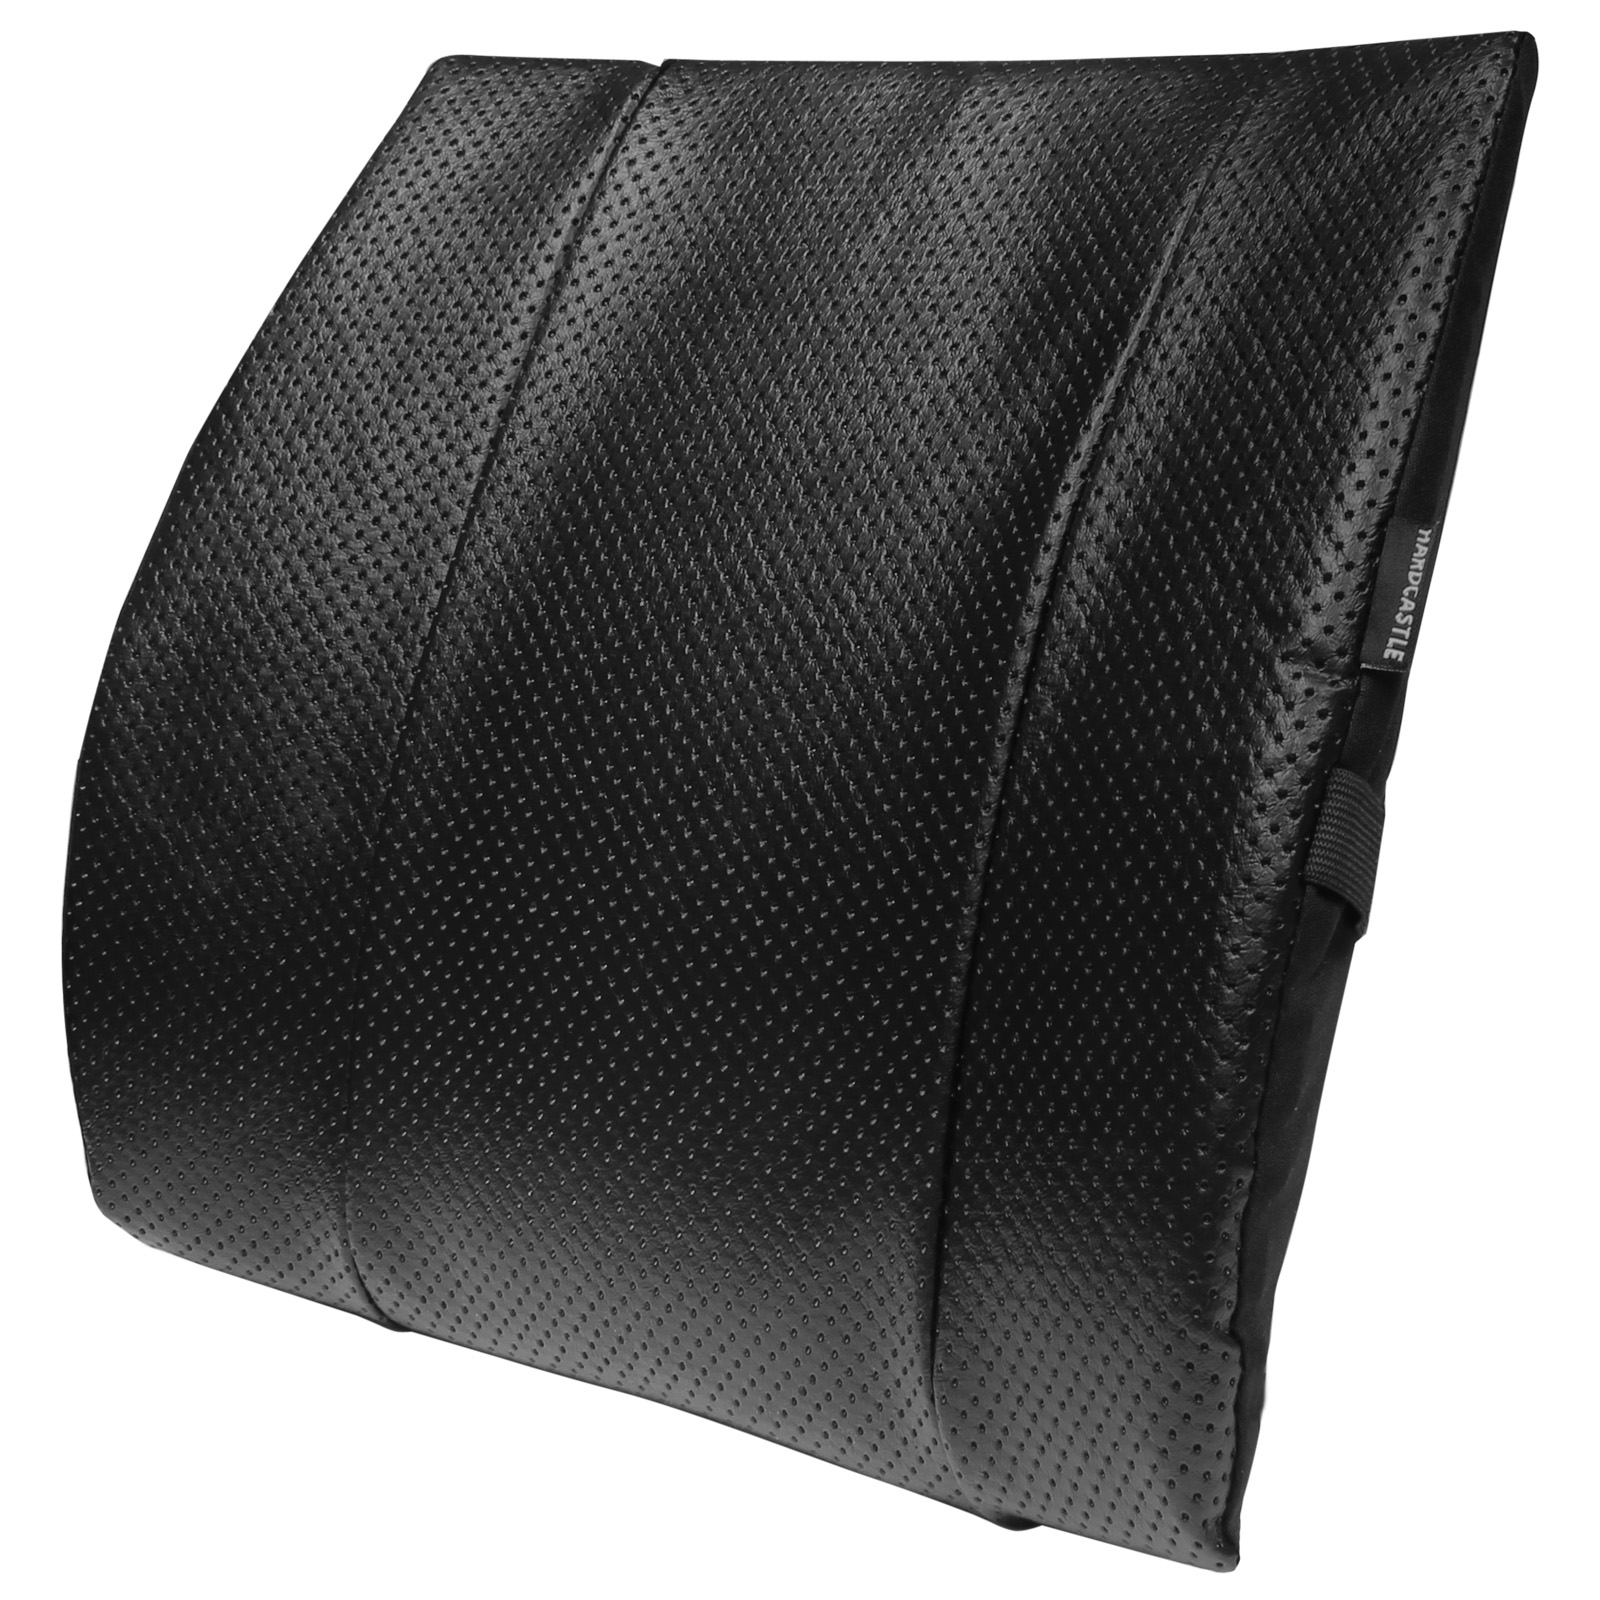 Lower Back Support For Office Chair Lower Back Lumbar Support Seat Chair Cushion Car Home